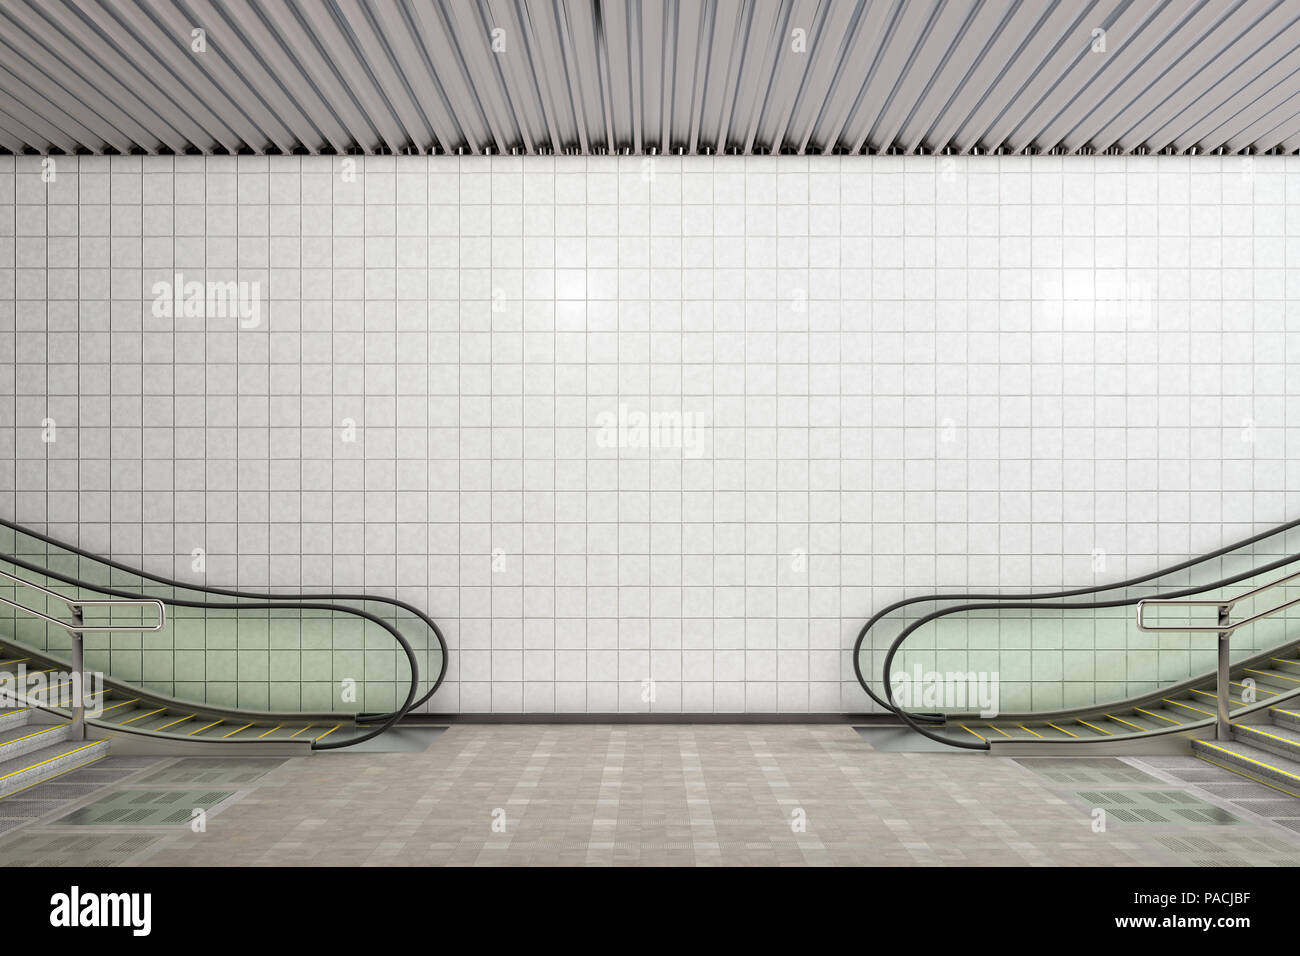 Blank Wall Underground For Advertising Poster Mockup 3d